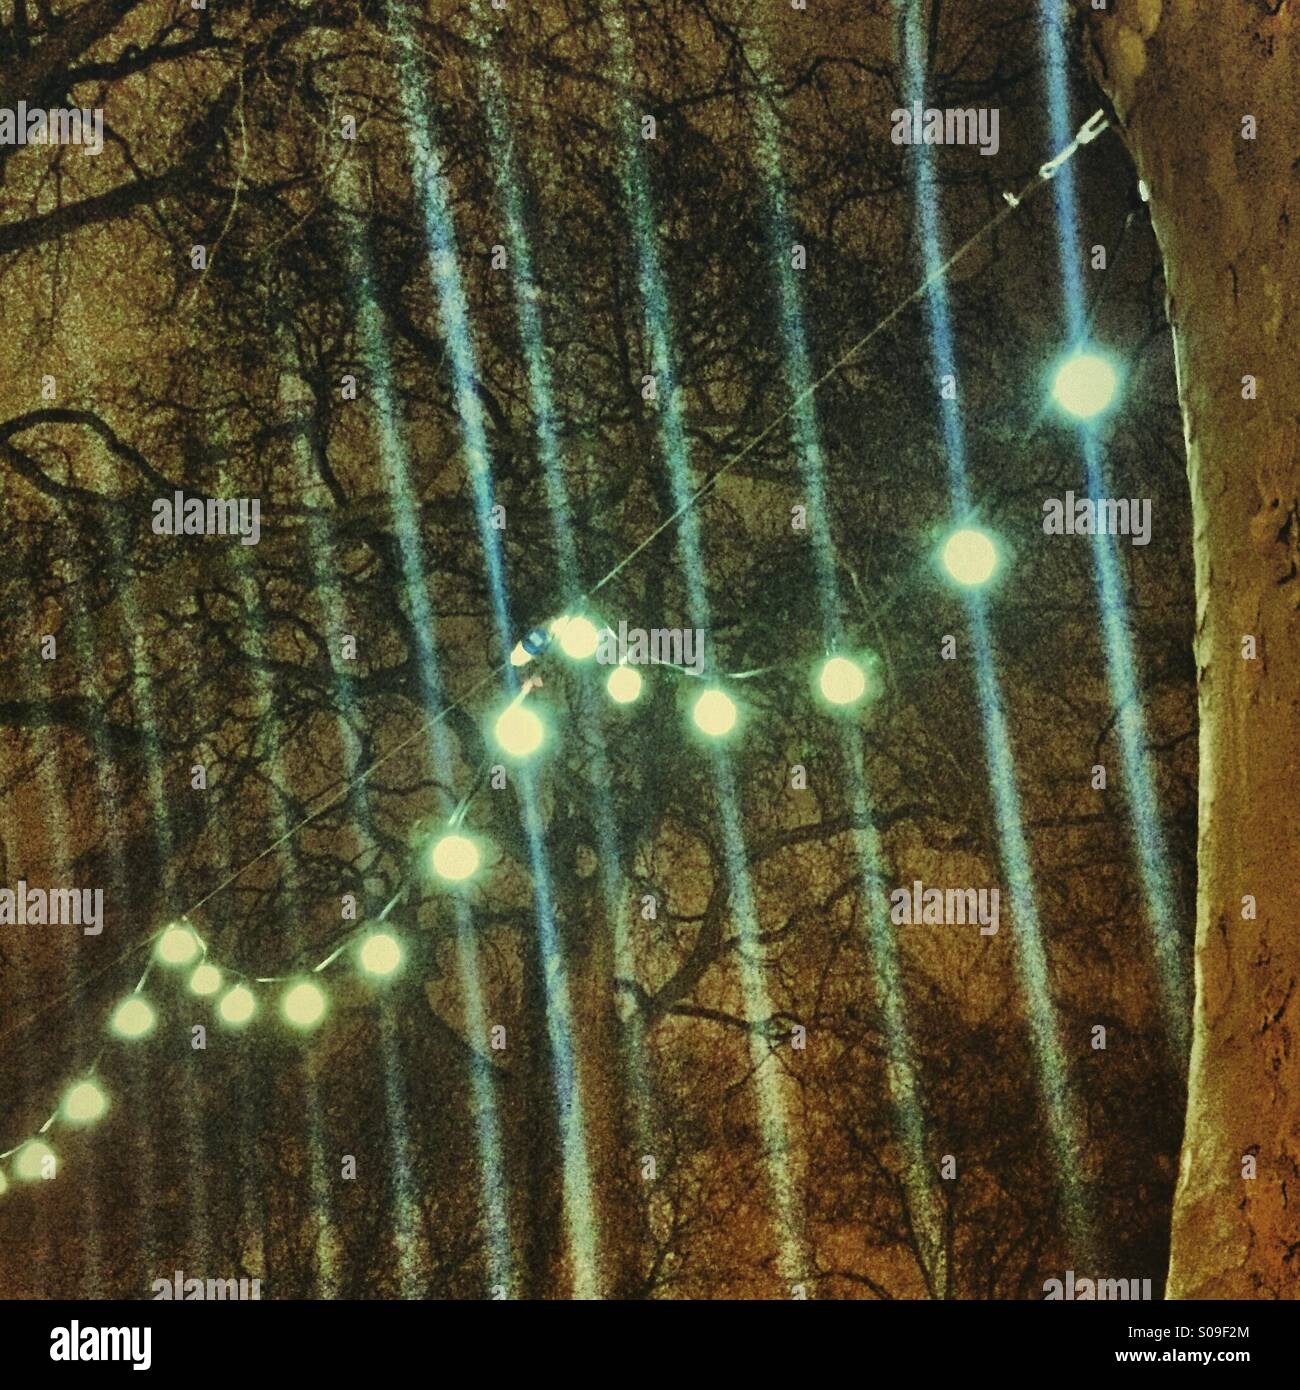 Christmas Lights glowing in Hoxton Square, London - Stock Image